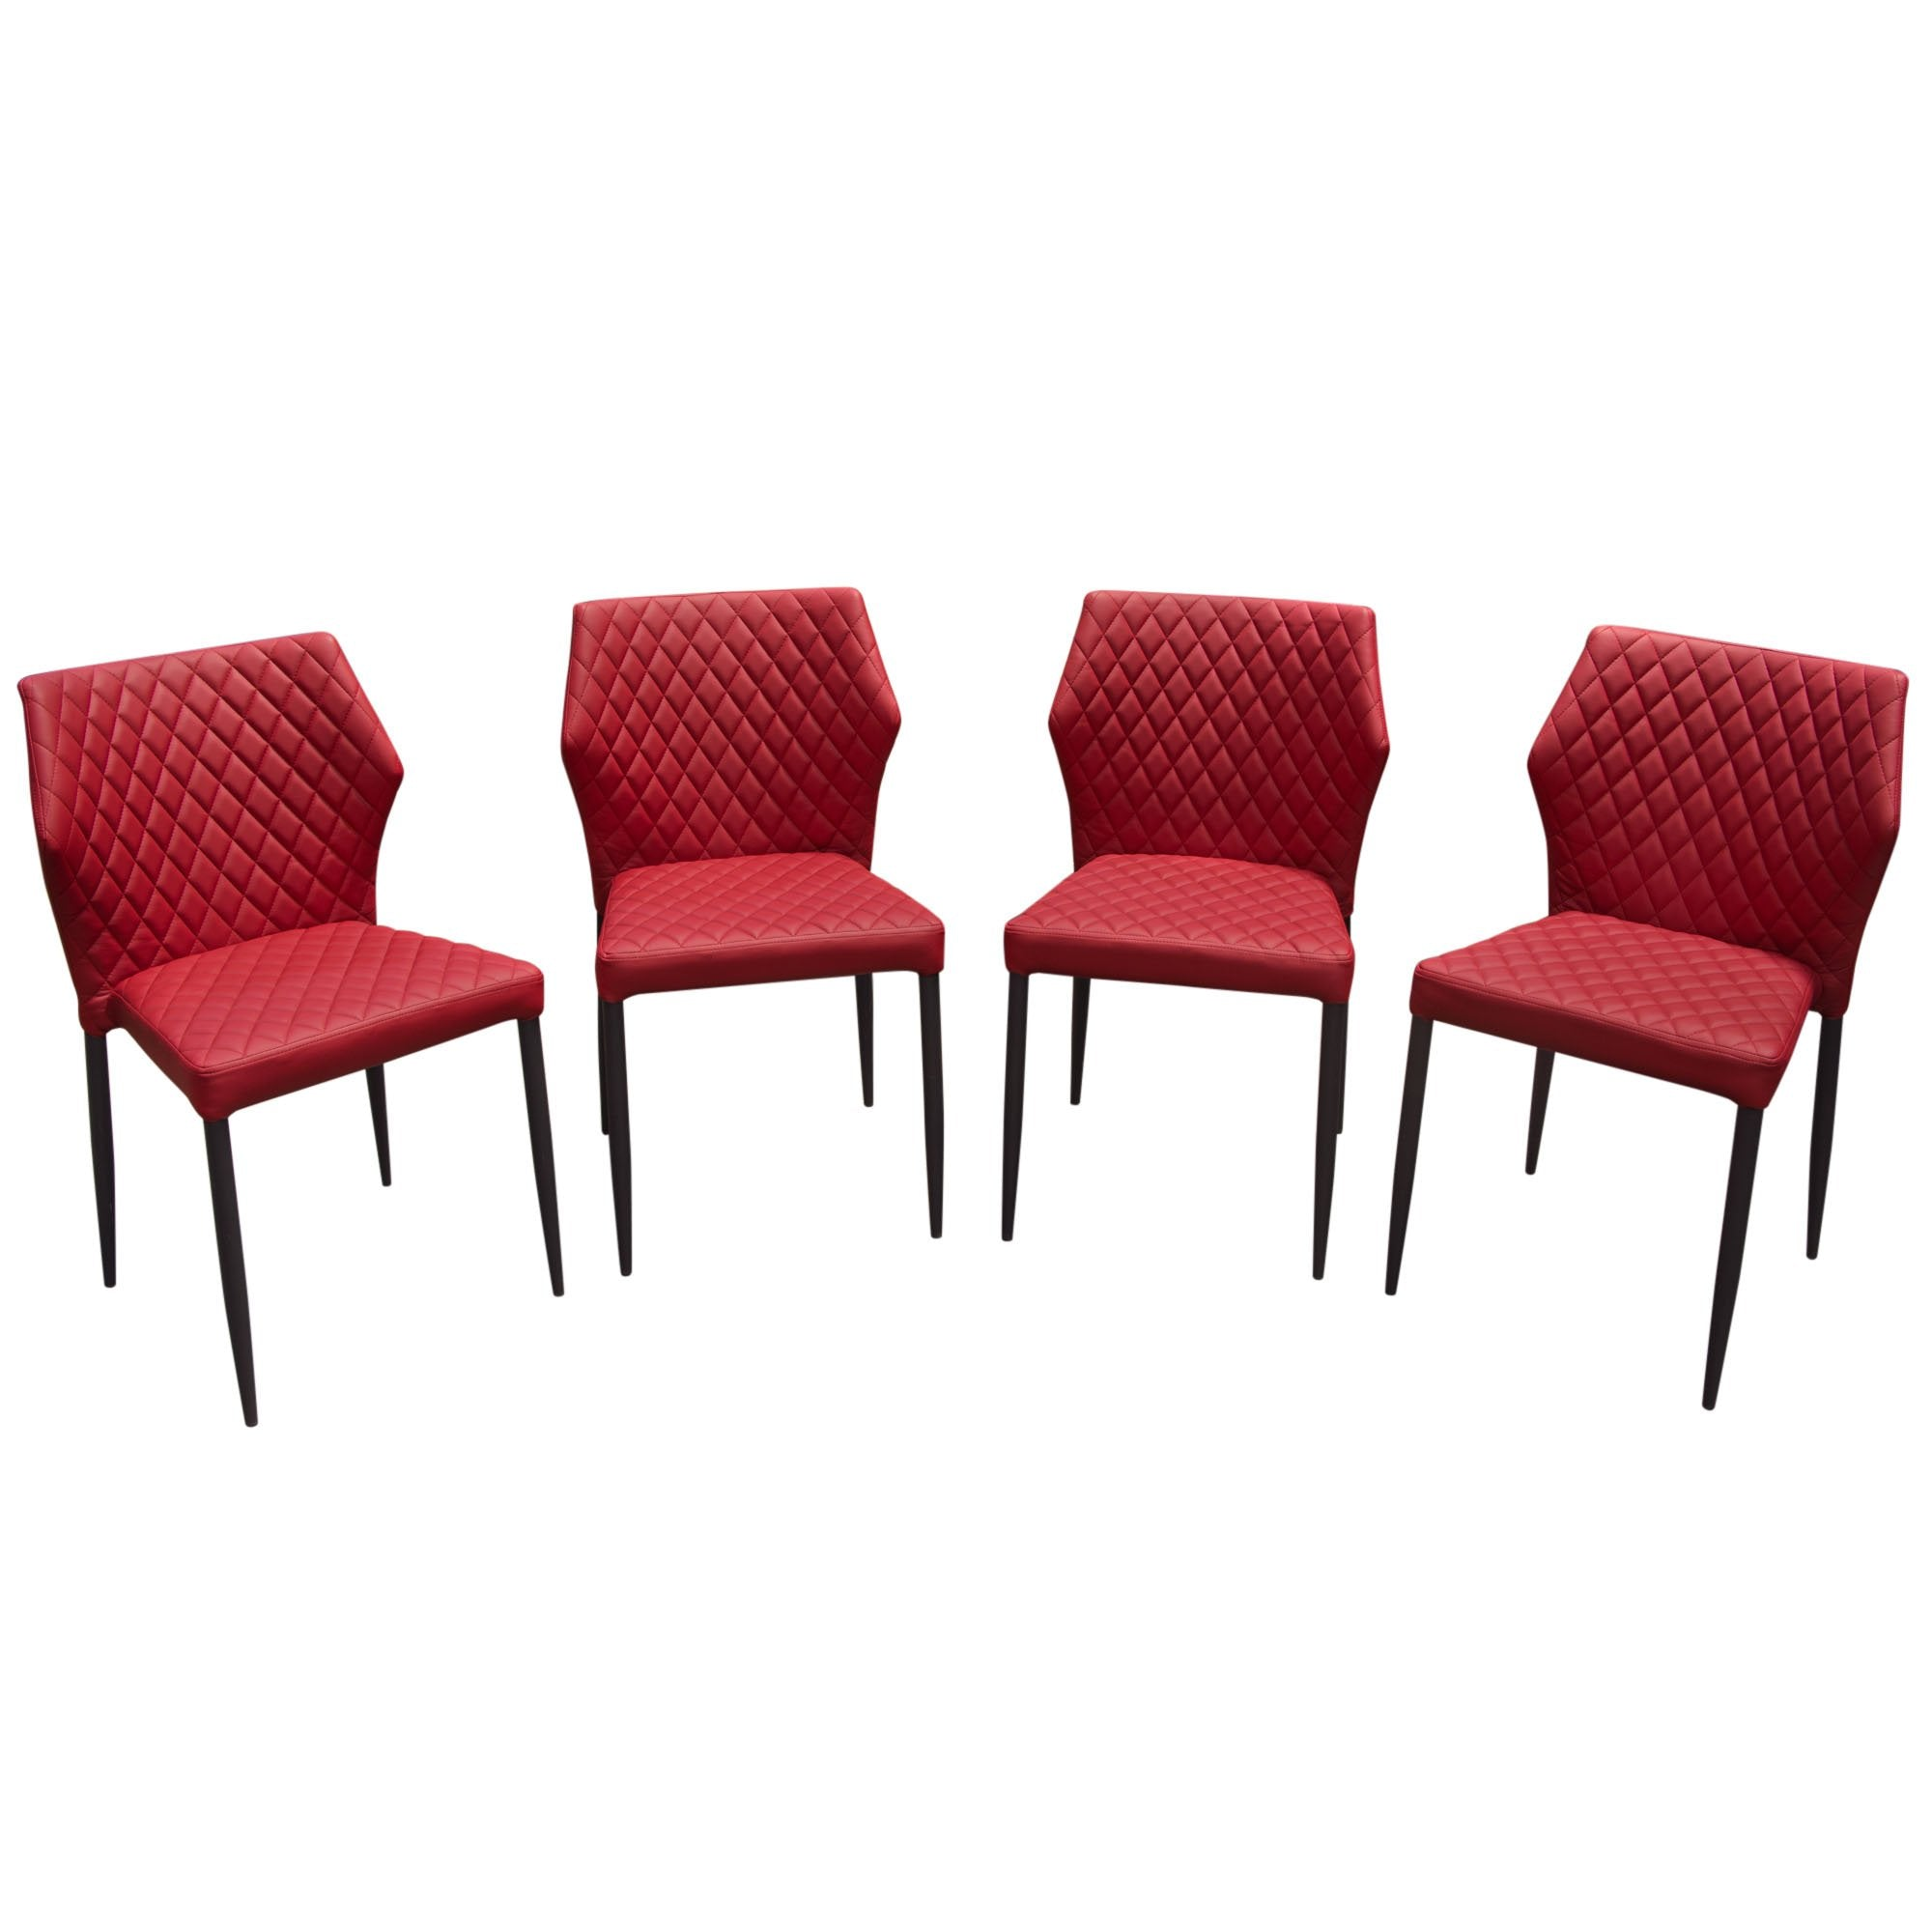 Milo 4-Pack Dining Chairs in Red Diamond Leatherette